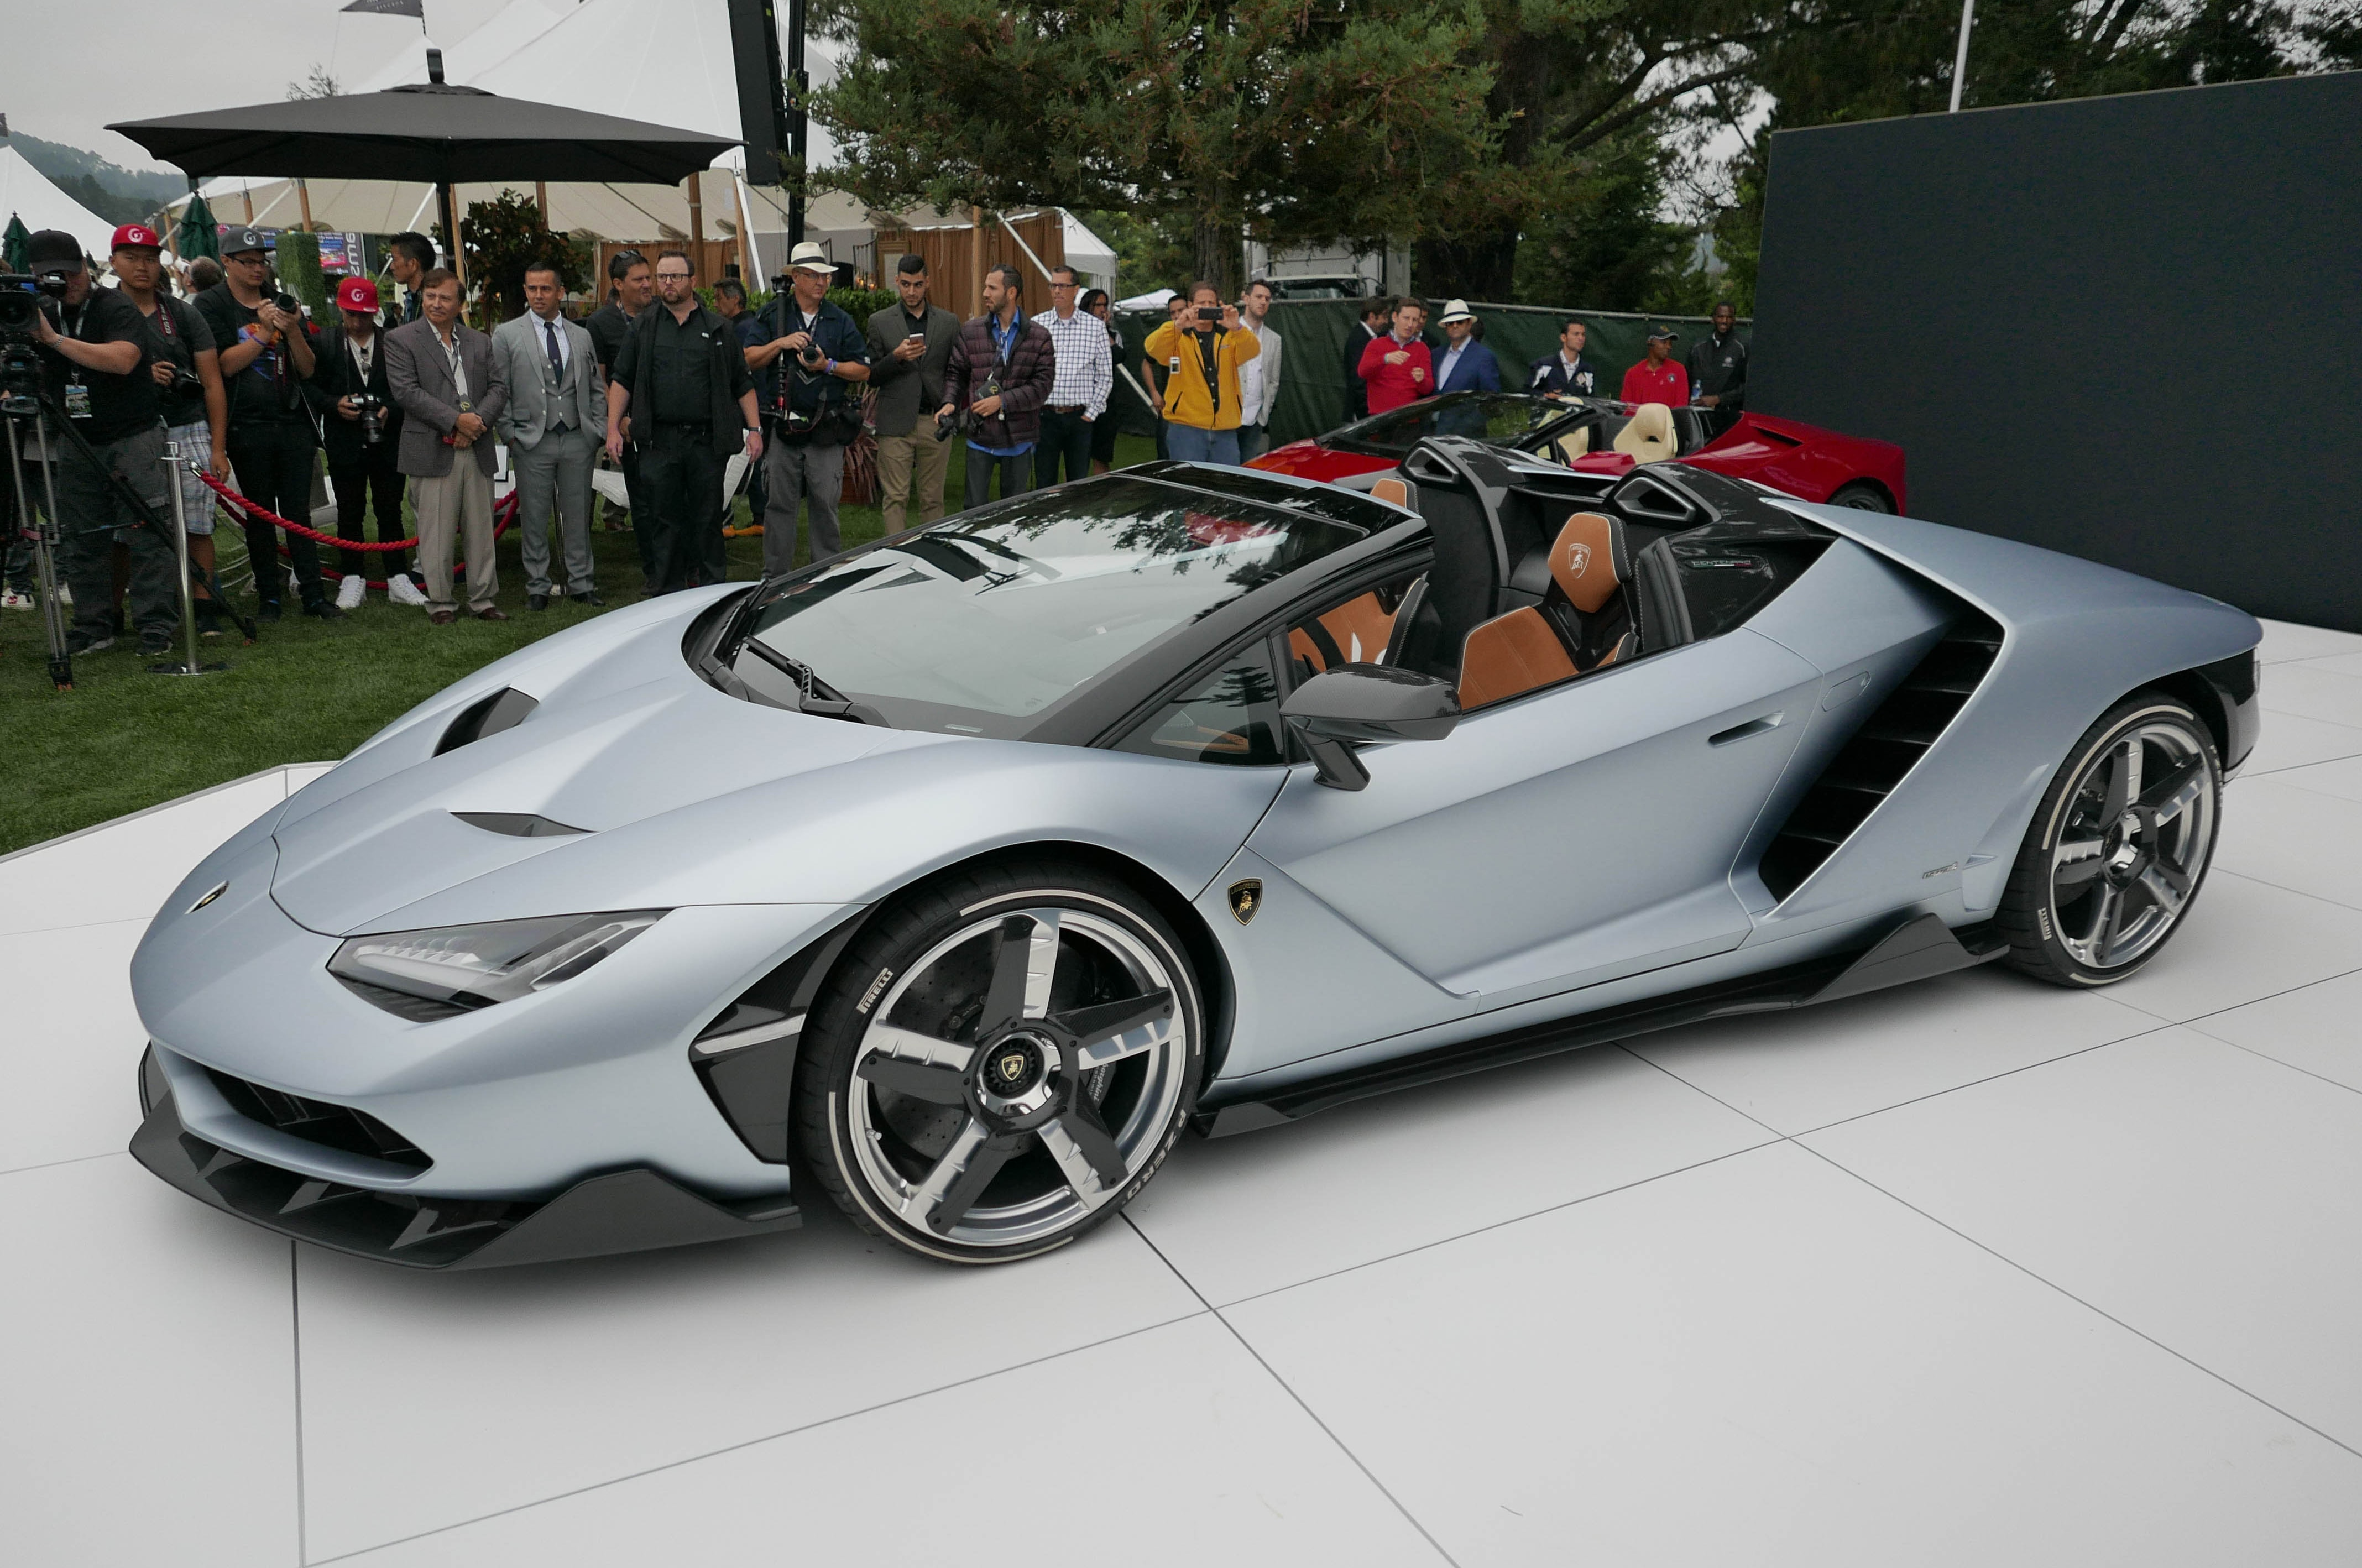 5 Cool Facts About The Lamborghini Centenario Roadster Automobile